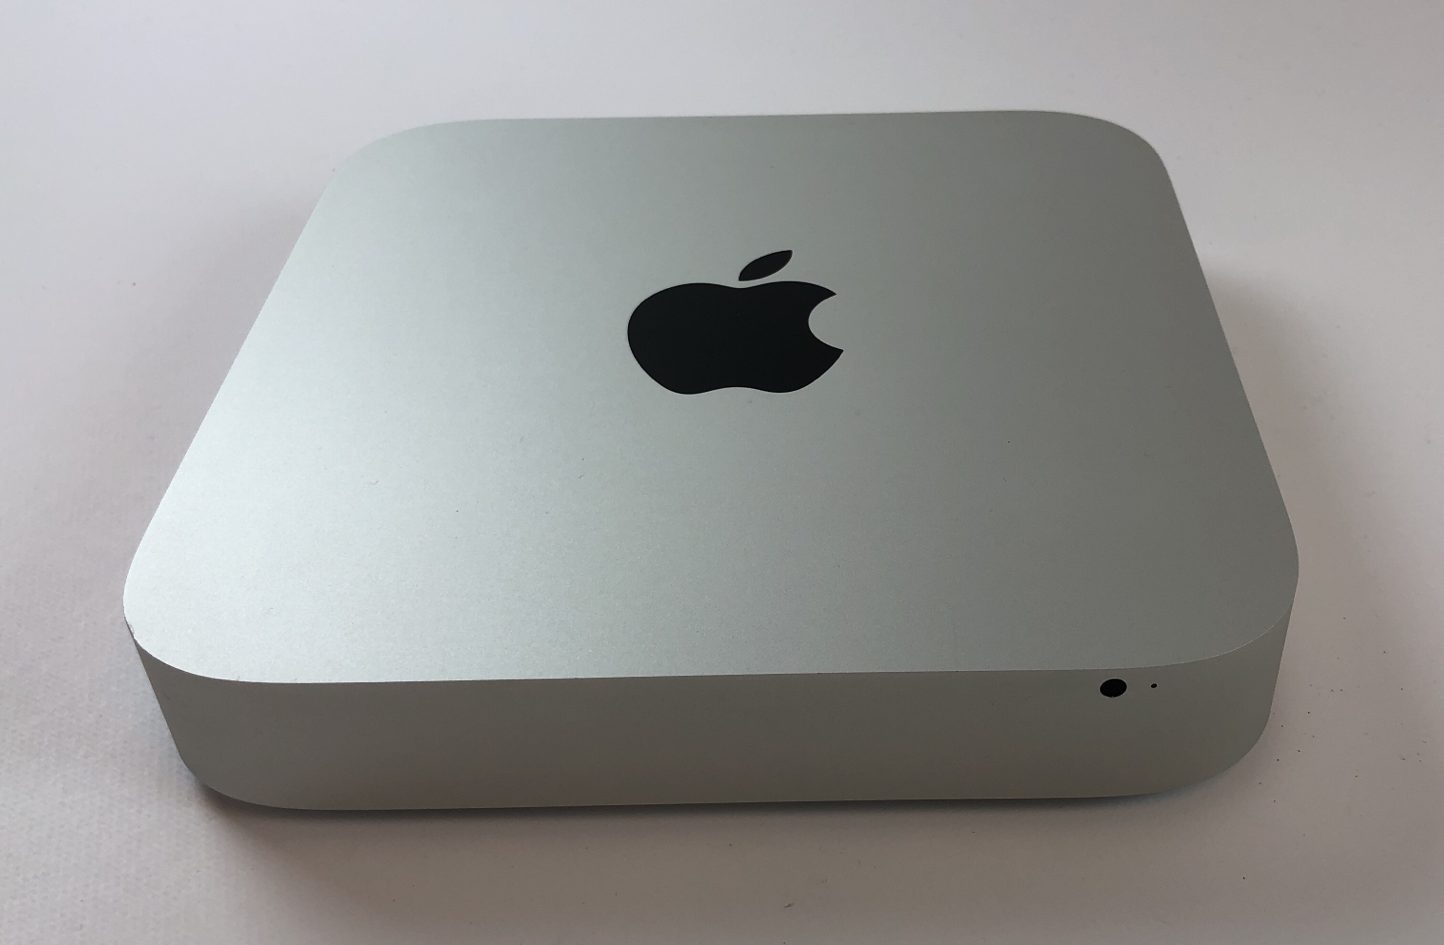 Mac Mini Late 2014 (Intel Core i5 1.4 GHz 4 GB RAM 500 GB HDD), Intel Core i5 1.4 GHz, 4 GB RAM, 500 GB HDD, Afbeelding 1